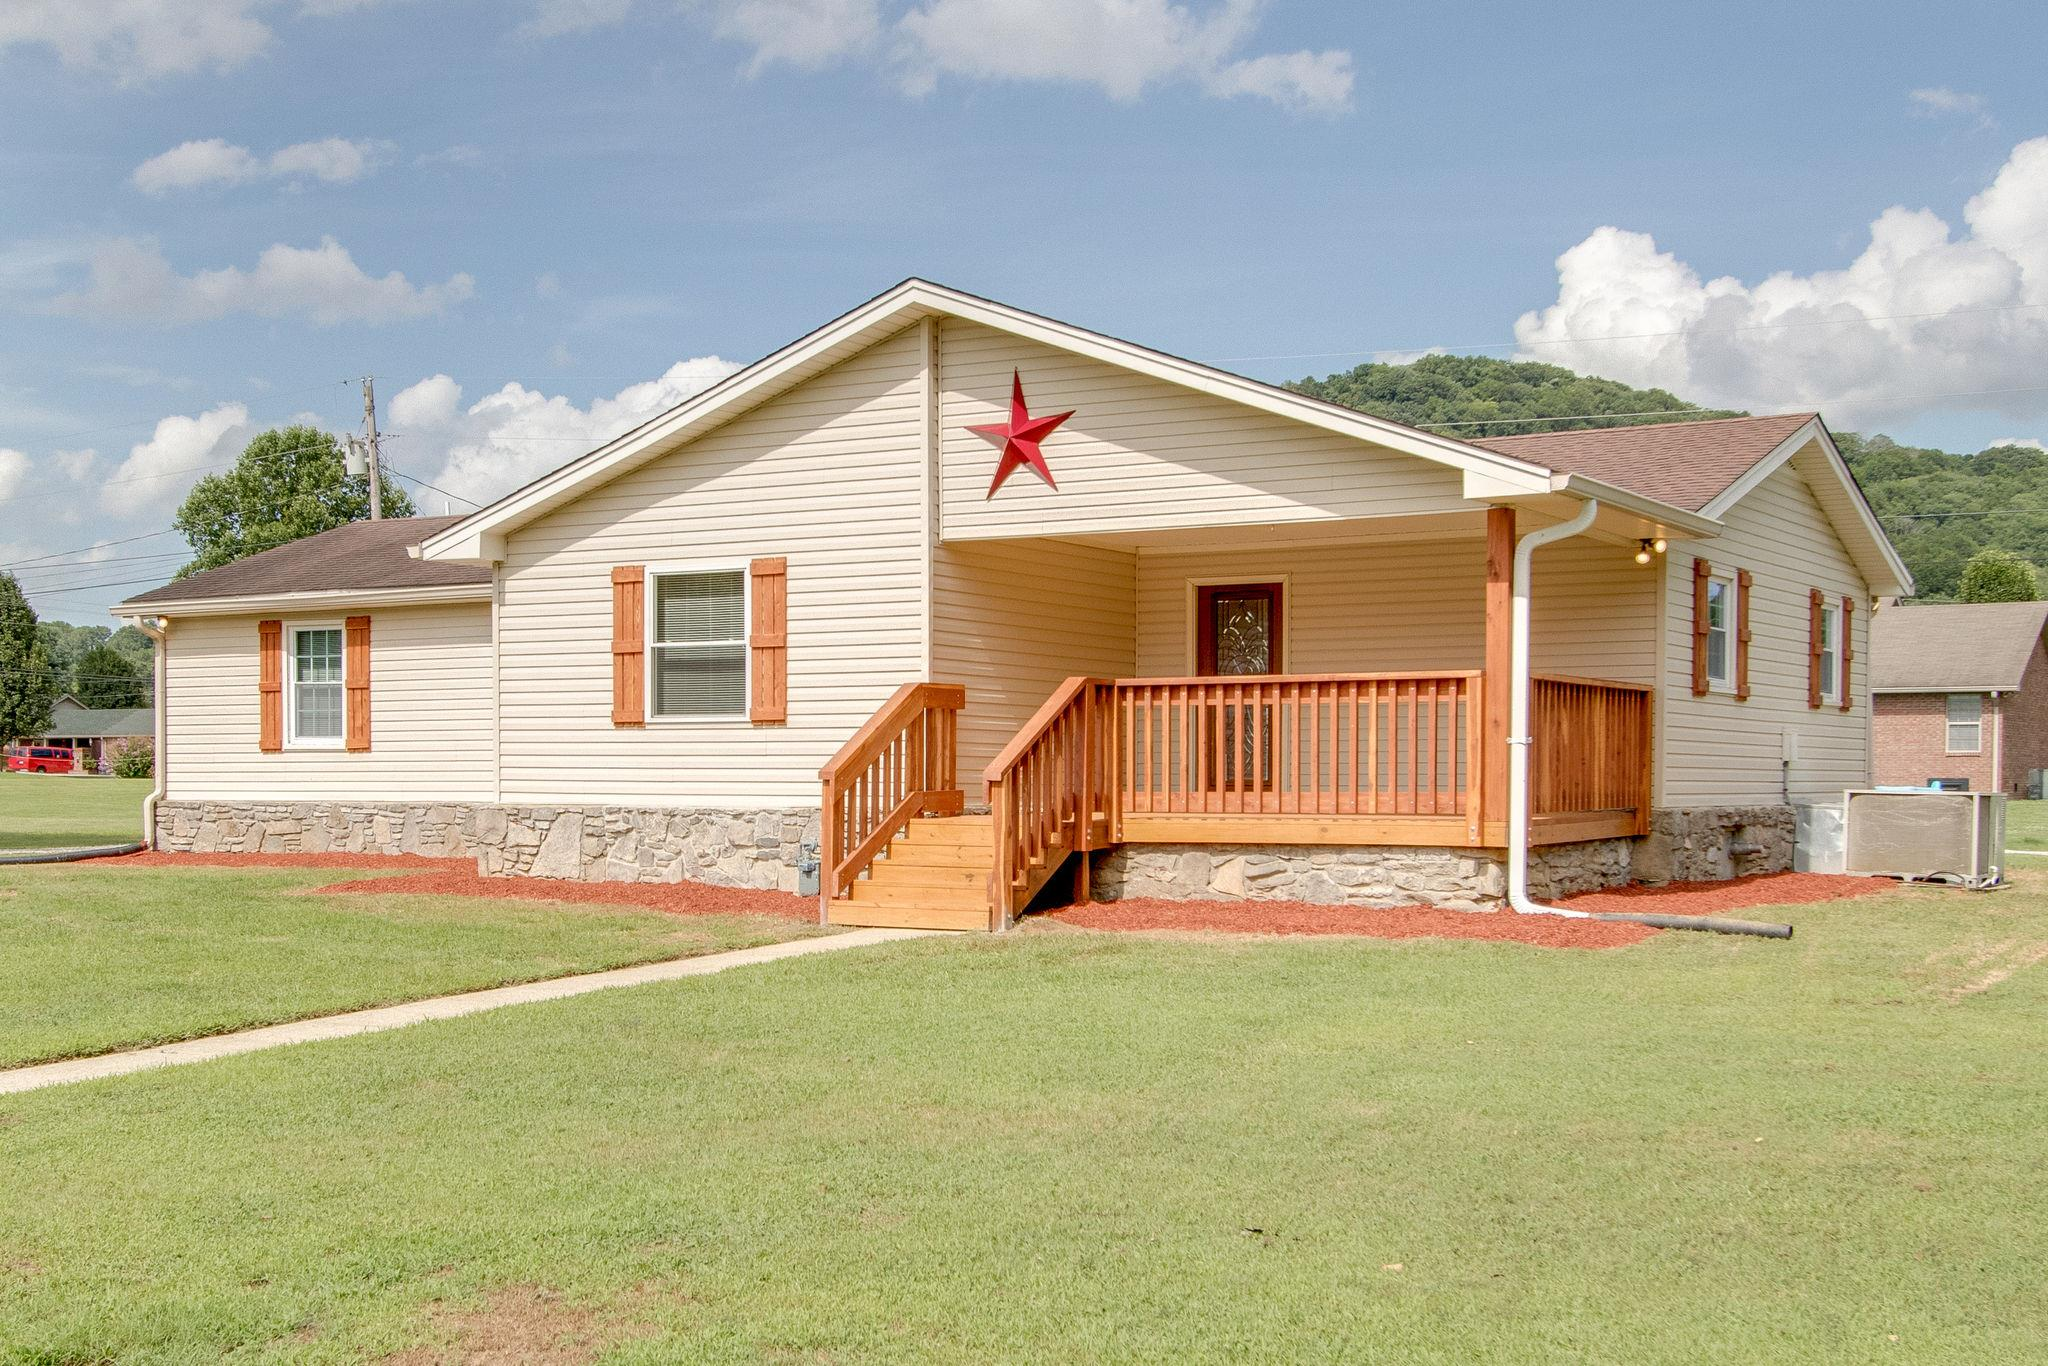 9 Hills Dale Ln E, Carthage, TN 37030 - Carthage, TN real estate listing